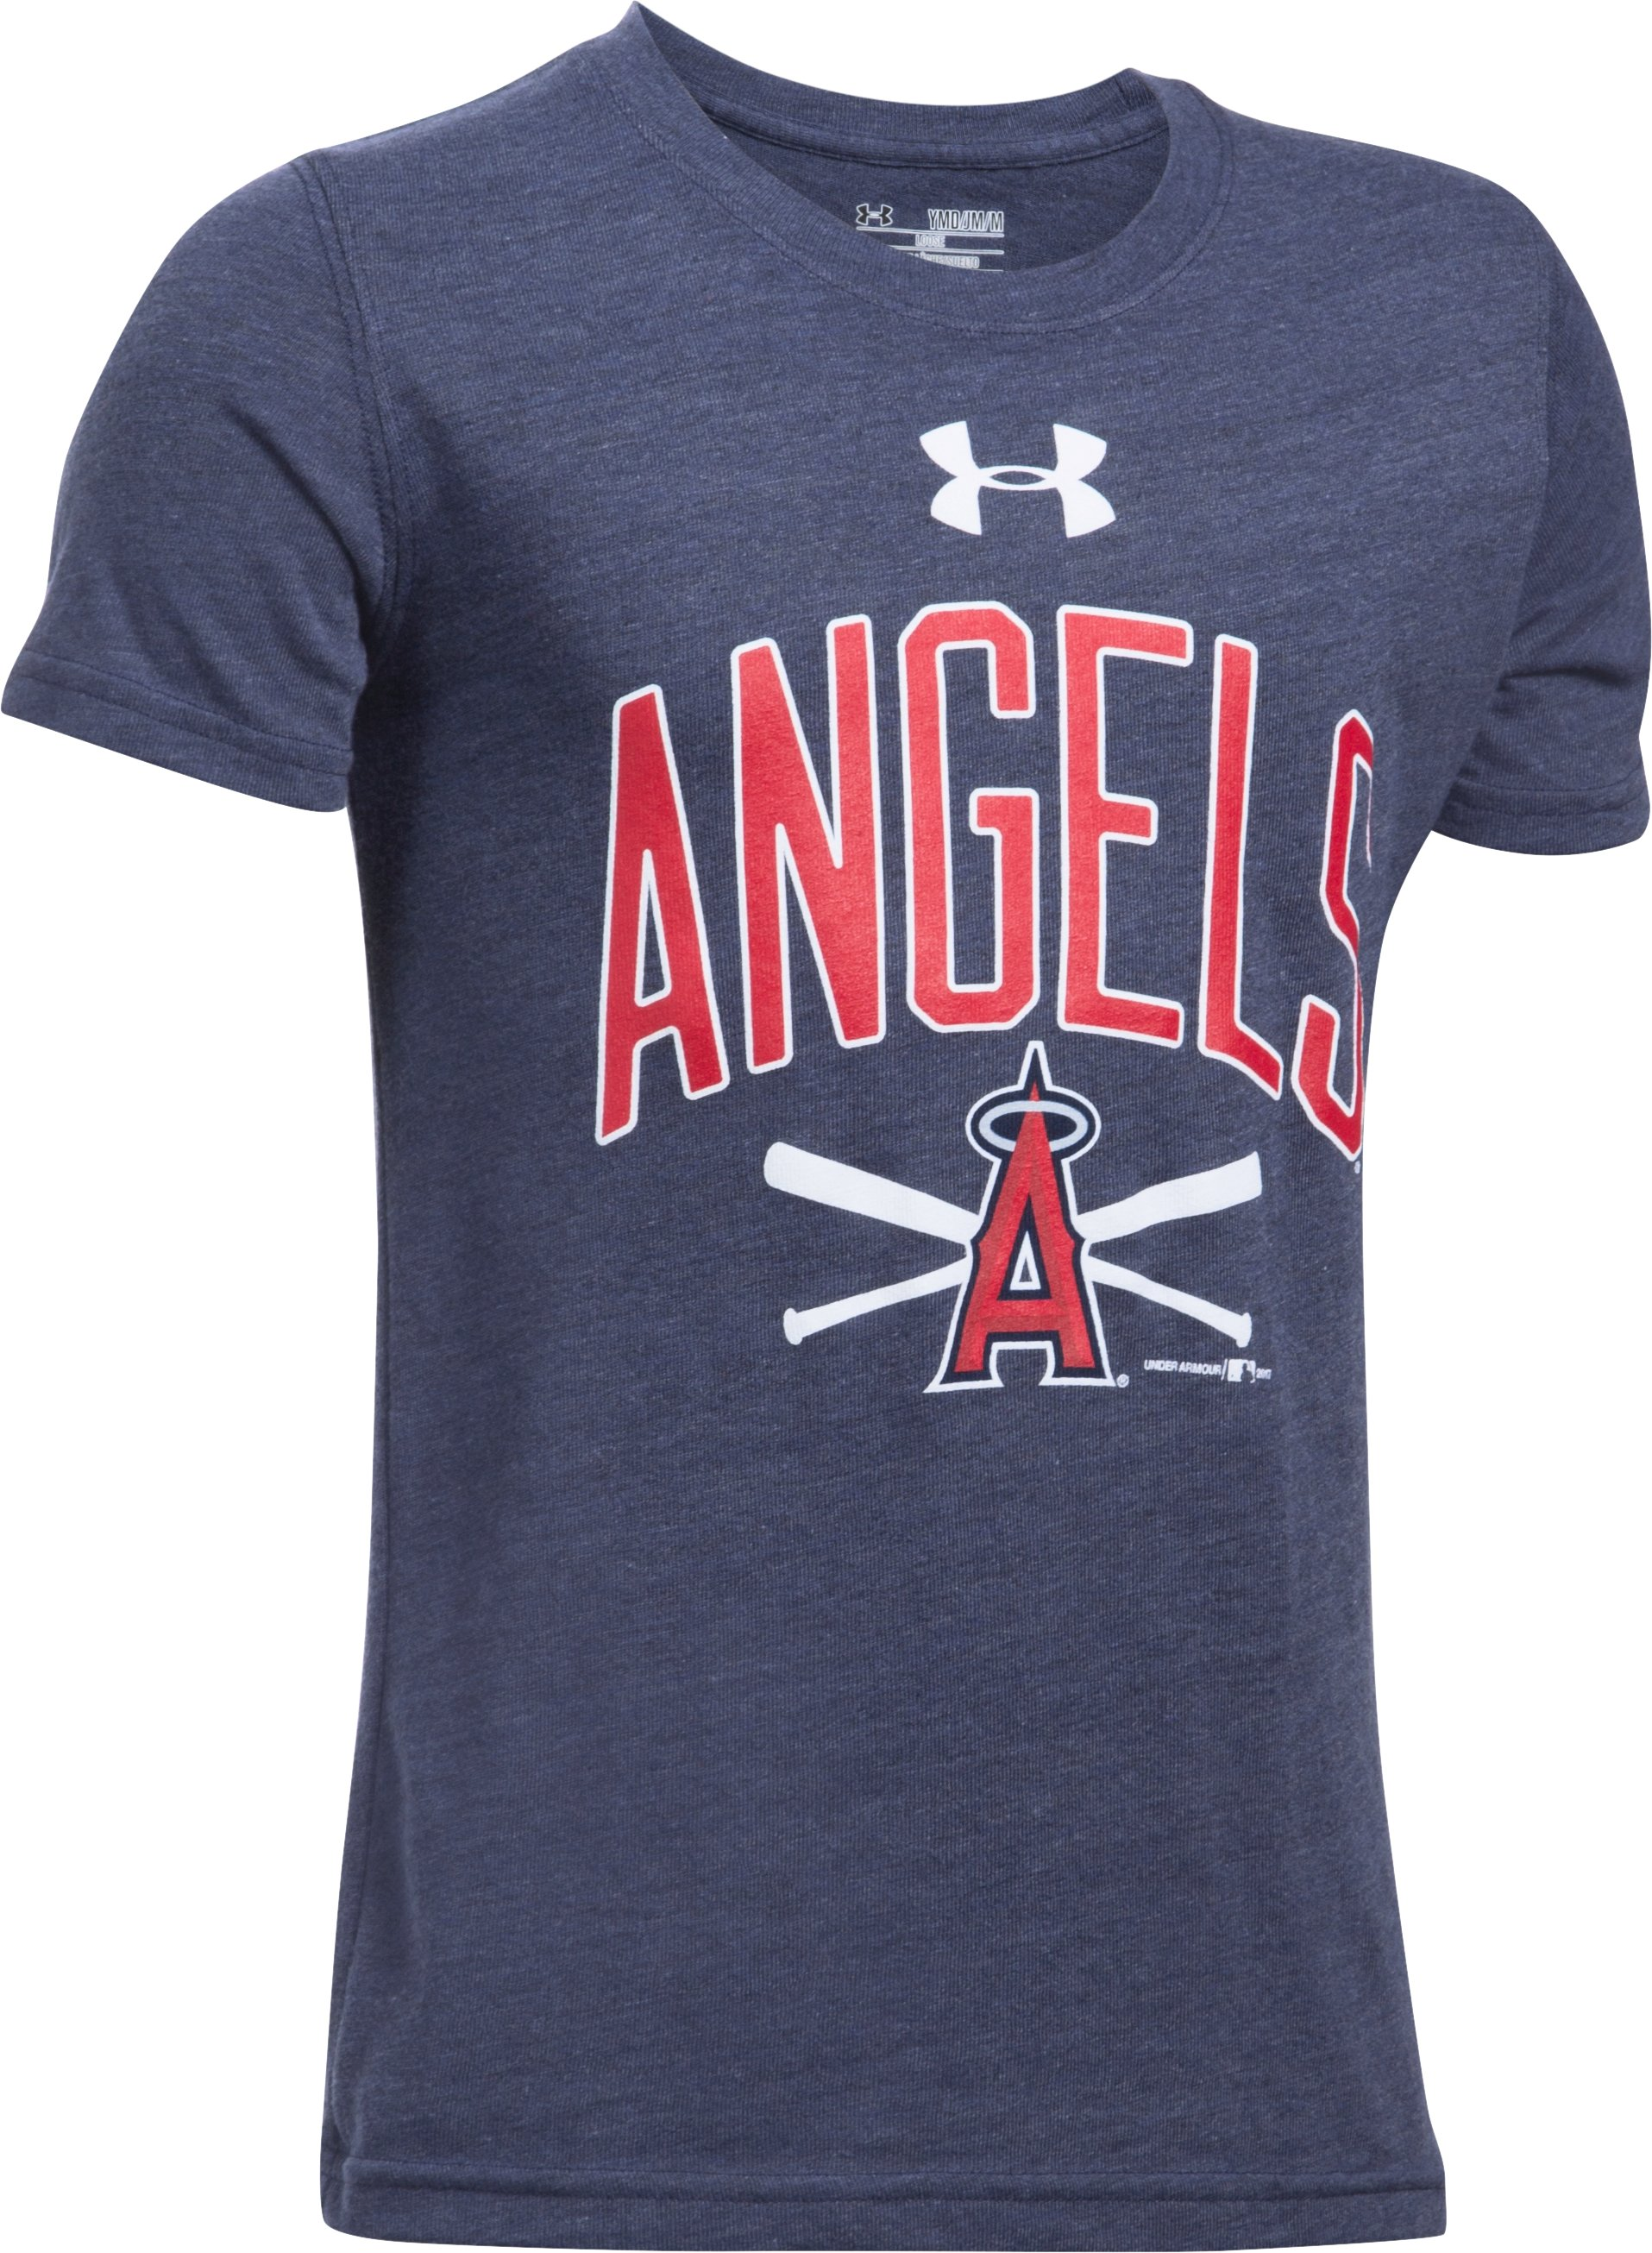 Boys' Los Angeles Angels Tri-Blend T-Shirt, Midnight Navy